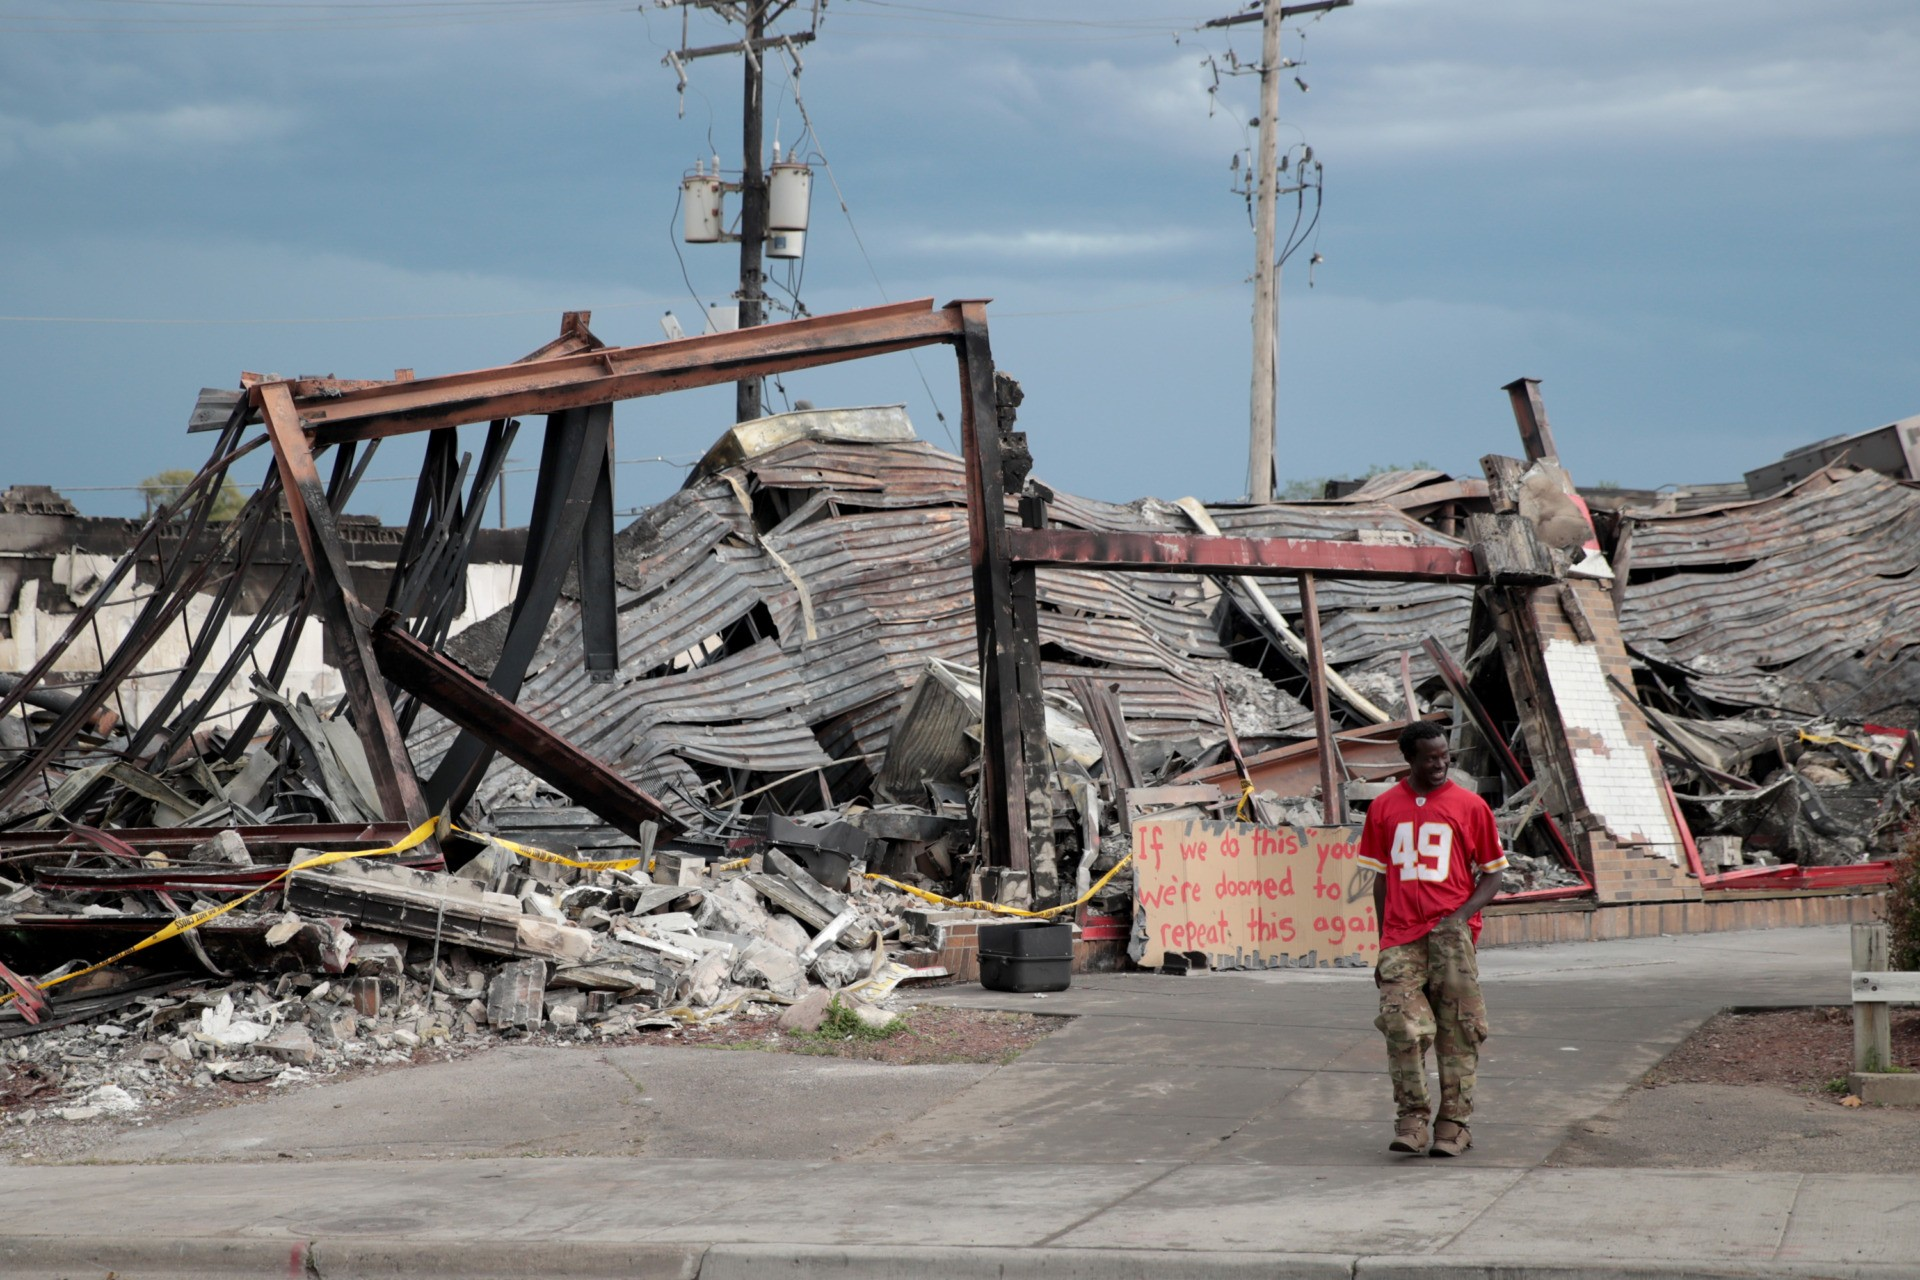 MINNEAPOLIS, MINNESOTA - JUNE 02: A man walk past the charred wreckage of a building destroyed during last week's rioting which was sparked by the death of George Floyd on June 2, 2020 in Minneapolis, Minnesota. Floyd was killed on May 25 while in Minneapolis police custody. Officer Derek Chauvin has been fired from the force, arrested and charged with third degree murder. (Photo by Scott Olson/Getty Images)